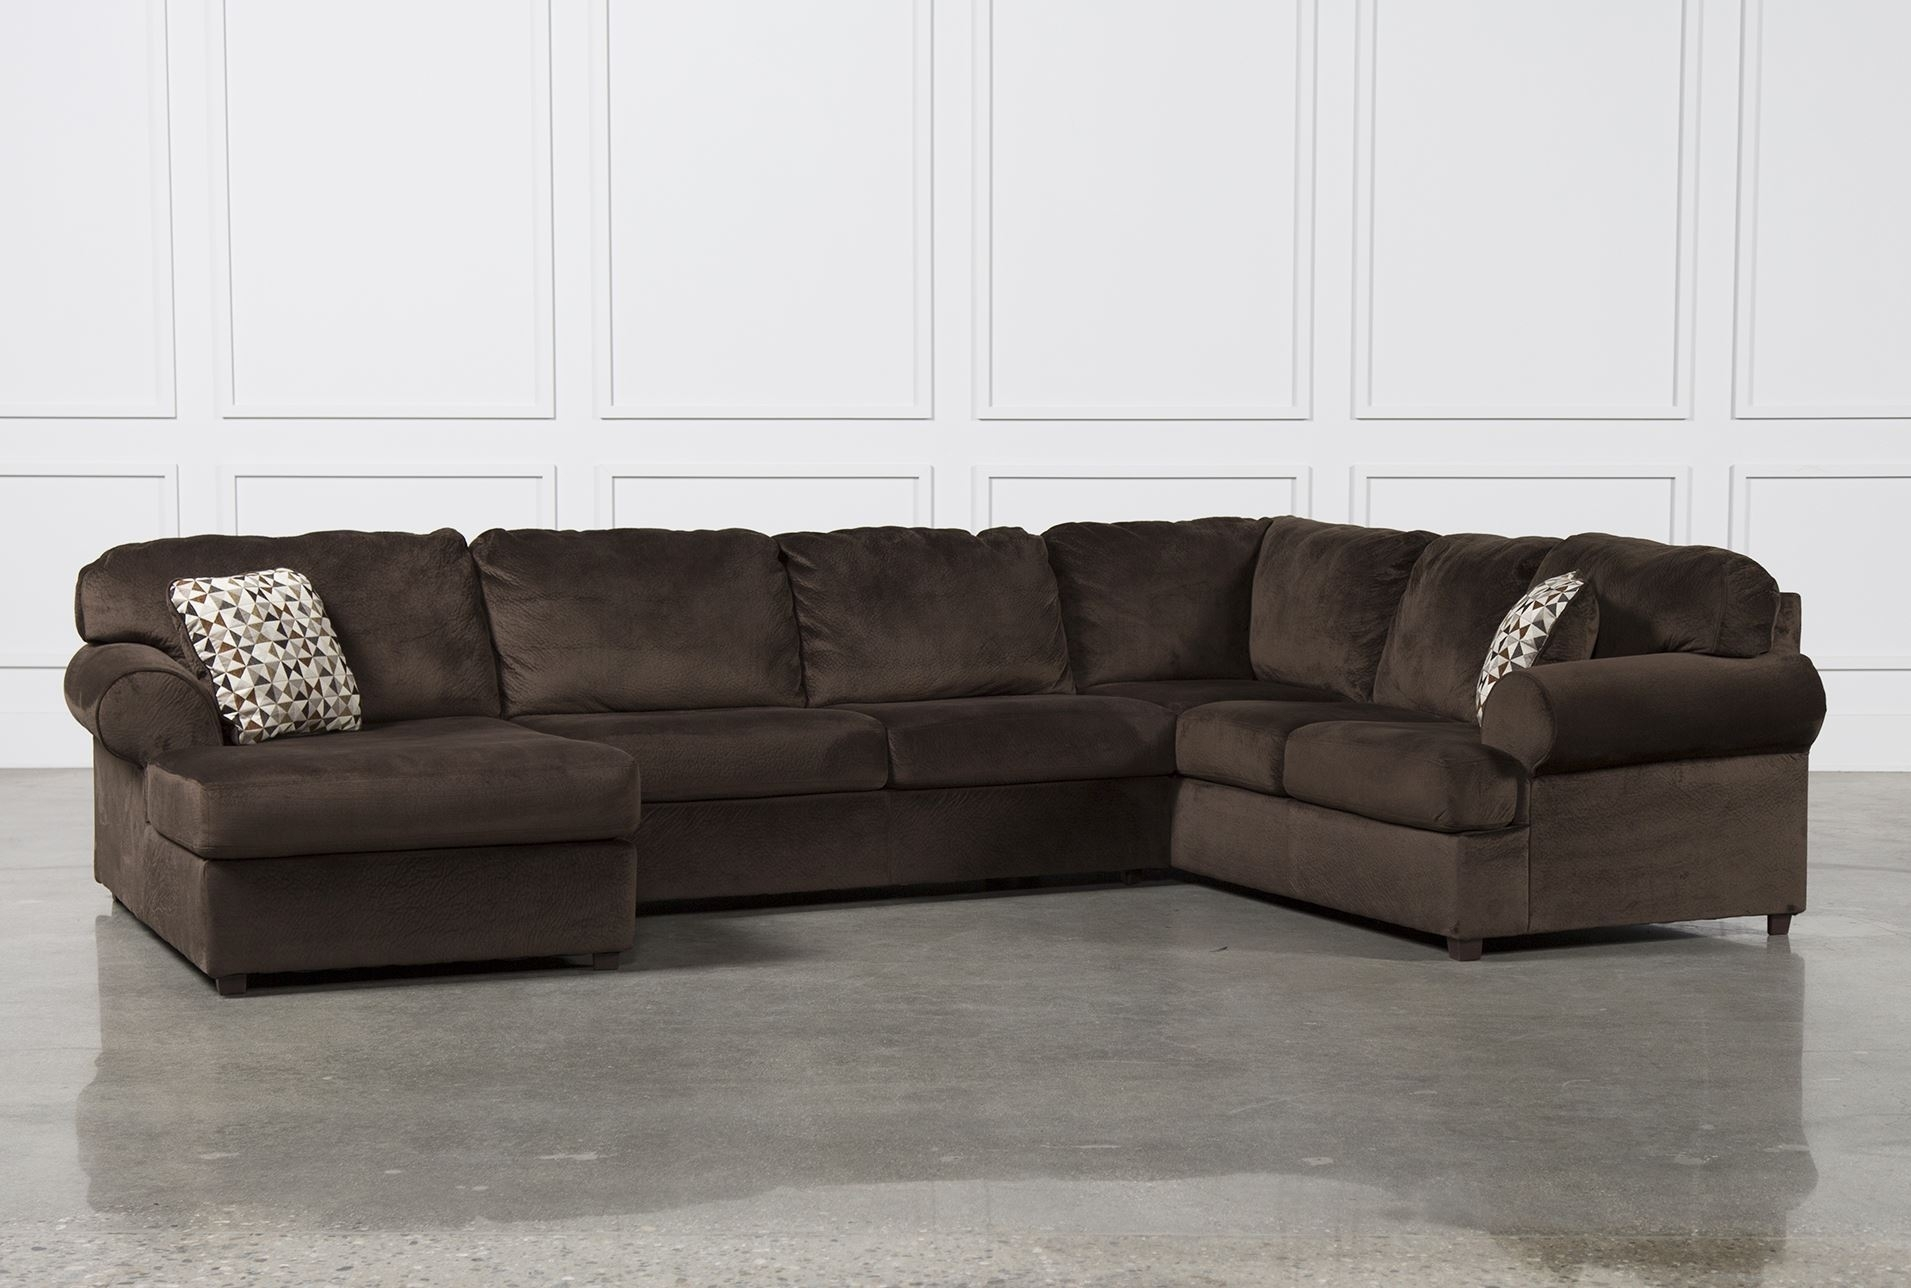 Sectional Sofas Leather And Couches Ideas With Living Spaces Couch within Adeline 3 Piece Sectionals (Image 25 of 30)